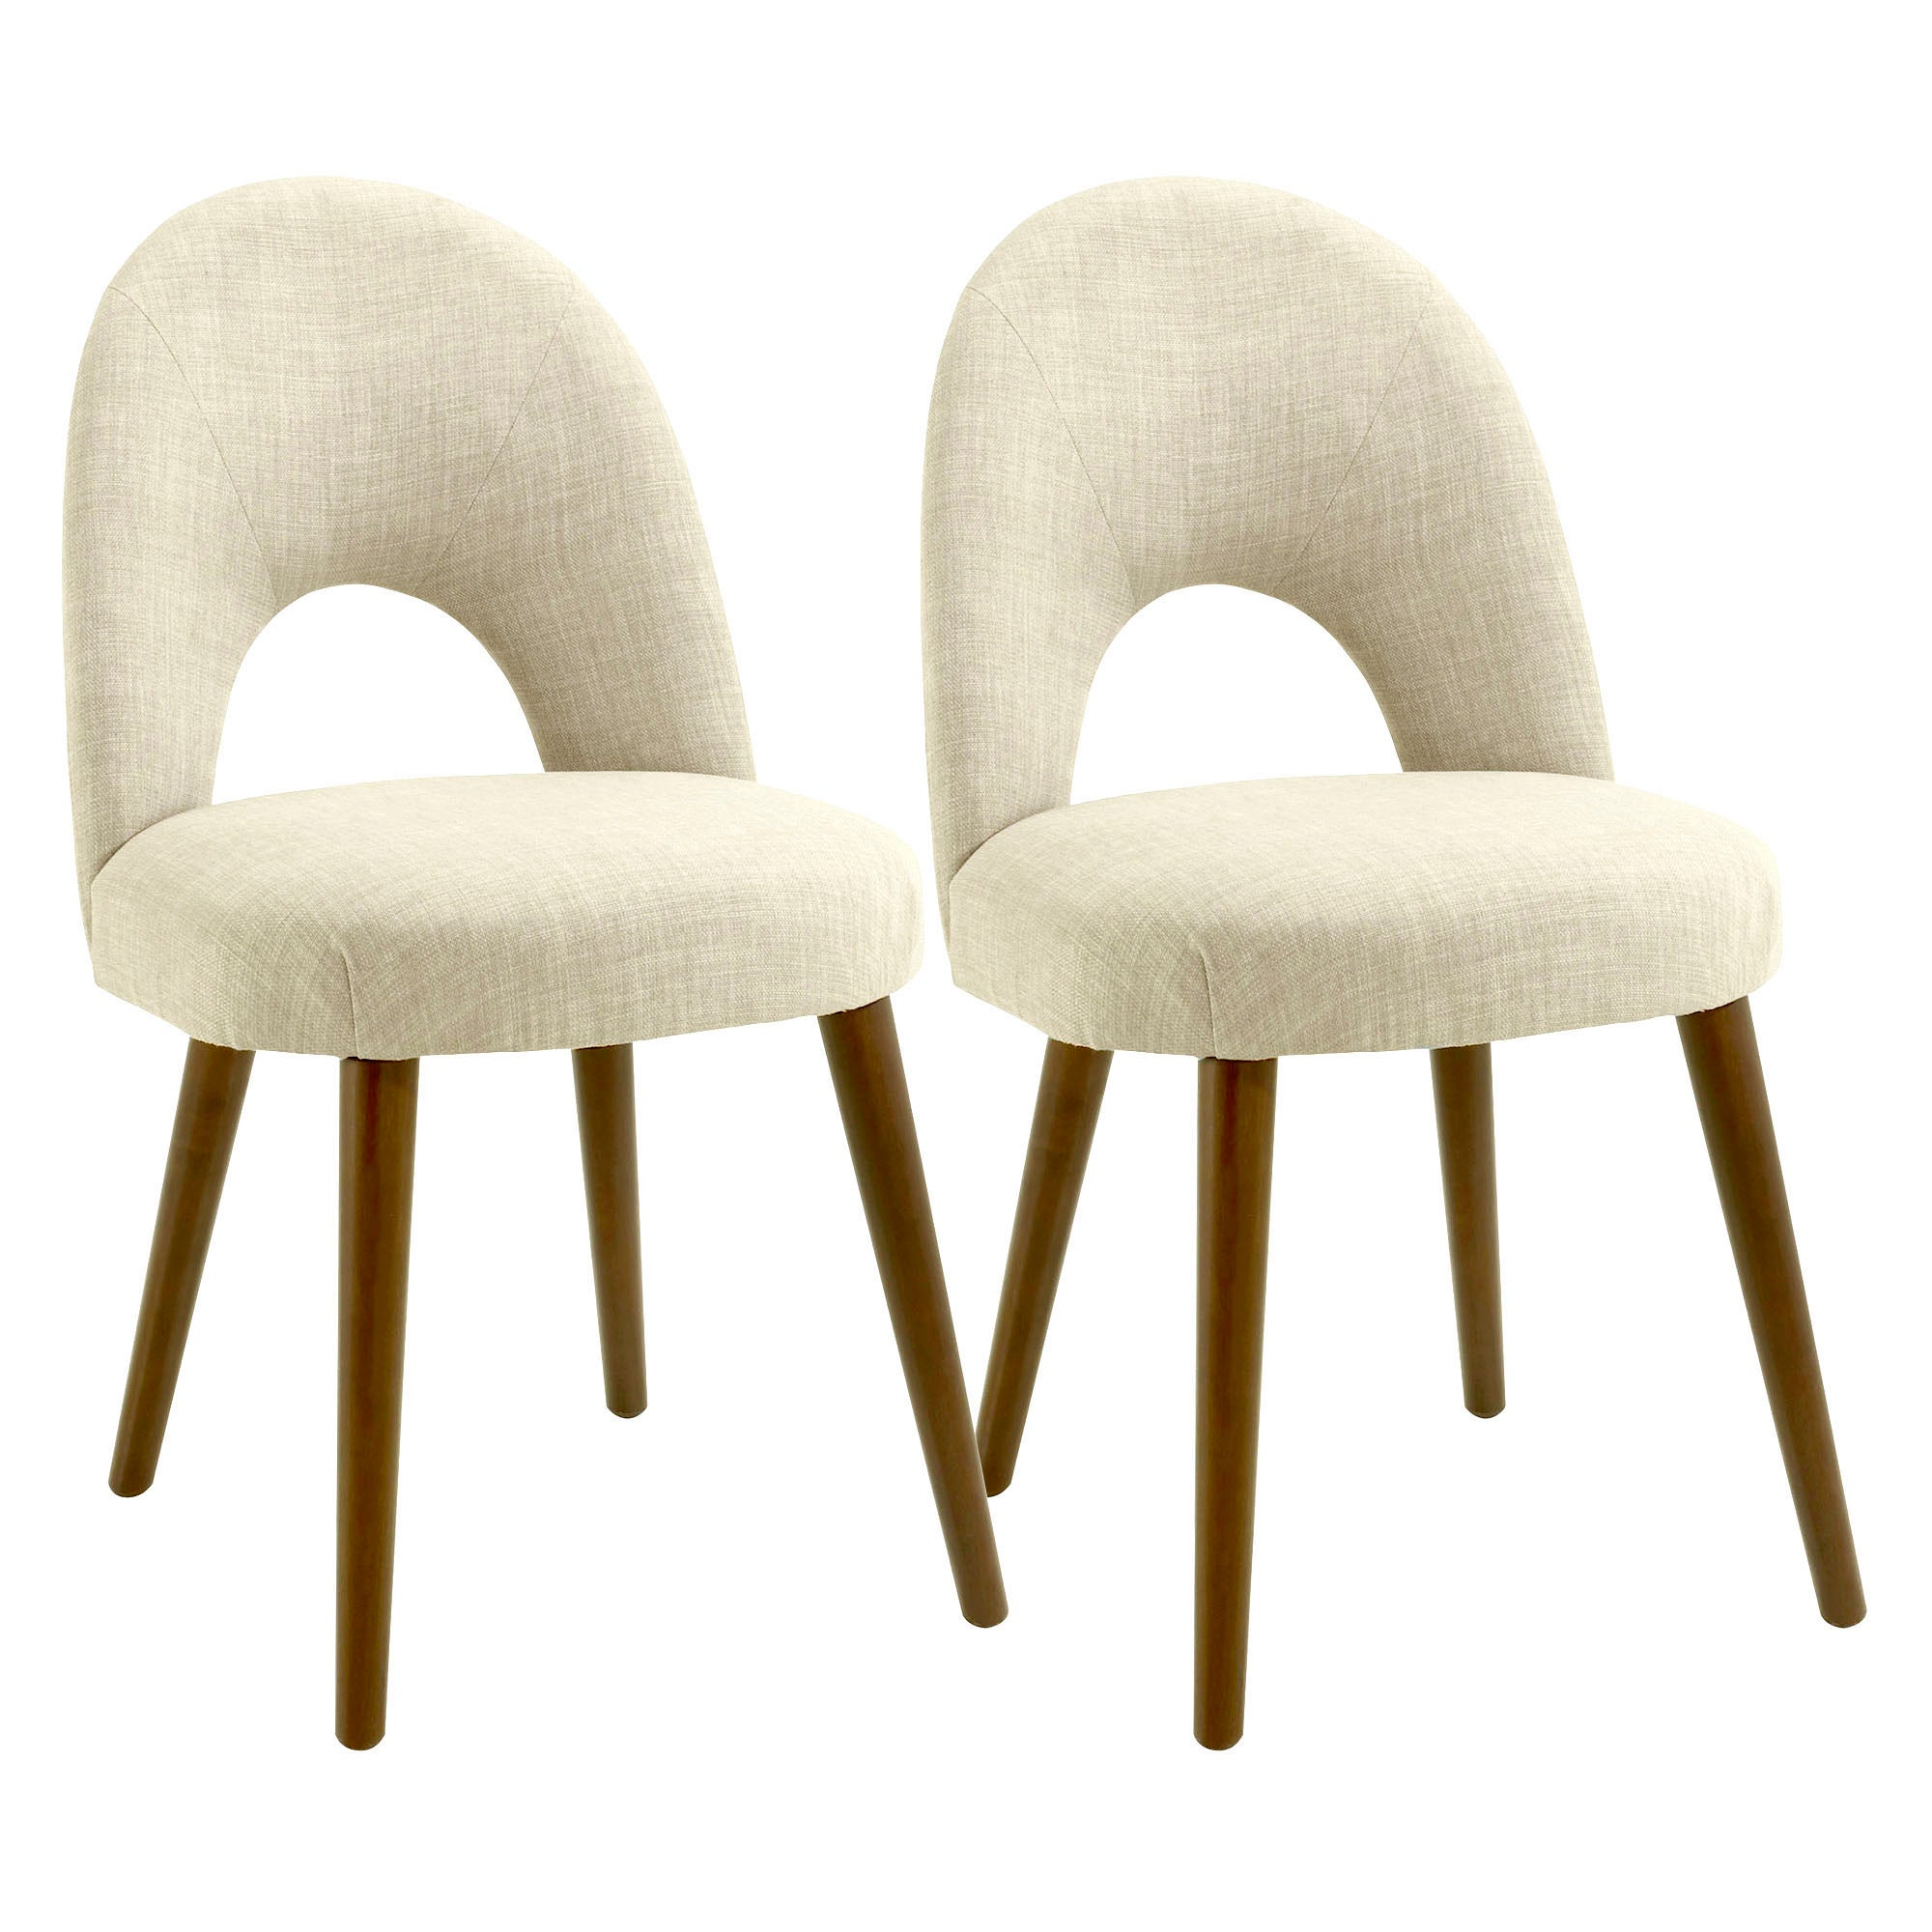 Skandi Walnut Pair of Upholstered Chairs